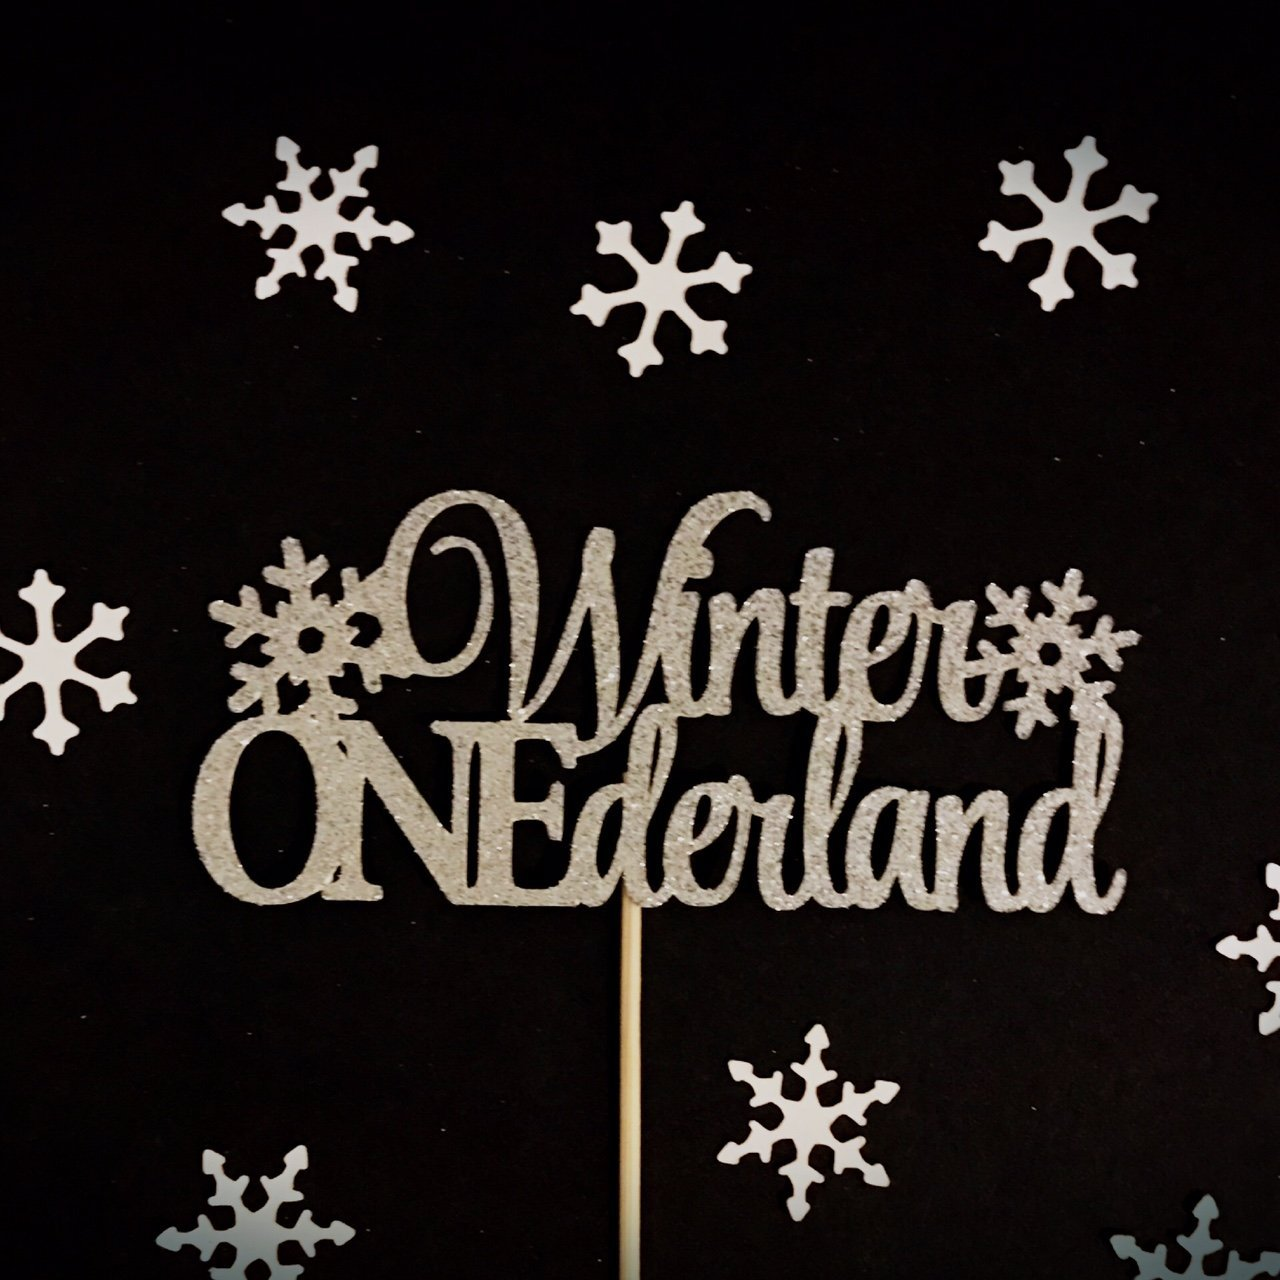 Winter Onederland Cake Topper, One Cake Topper, Snowflake One Cake Topper, First Birthday Cake Topper, 1st Birthday Cake Topper, Little Snowflake Cake Topper, Winter Birthday Cake Topper